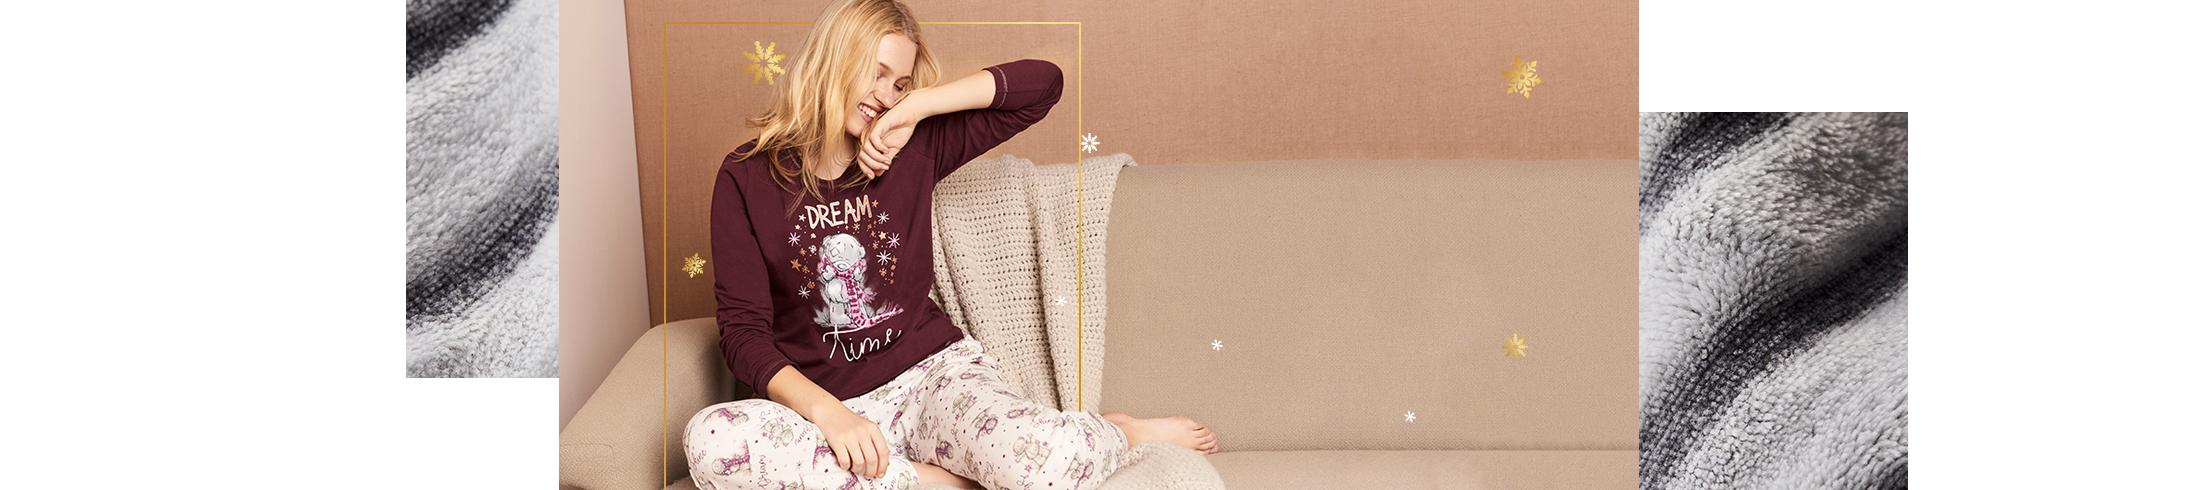 Get into the Christmas spirit with festive nightwear